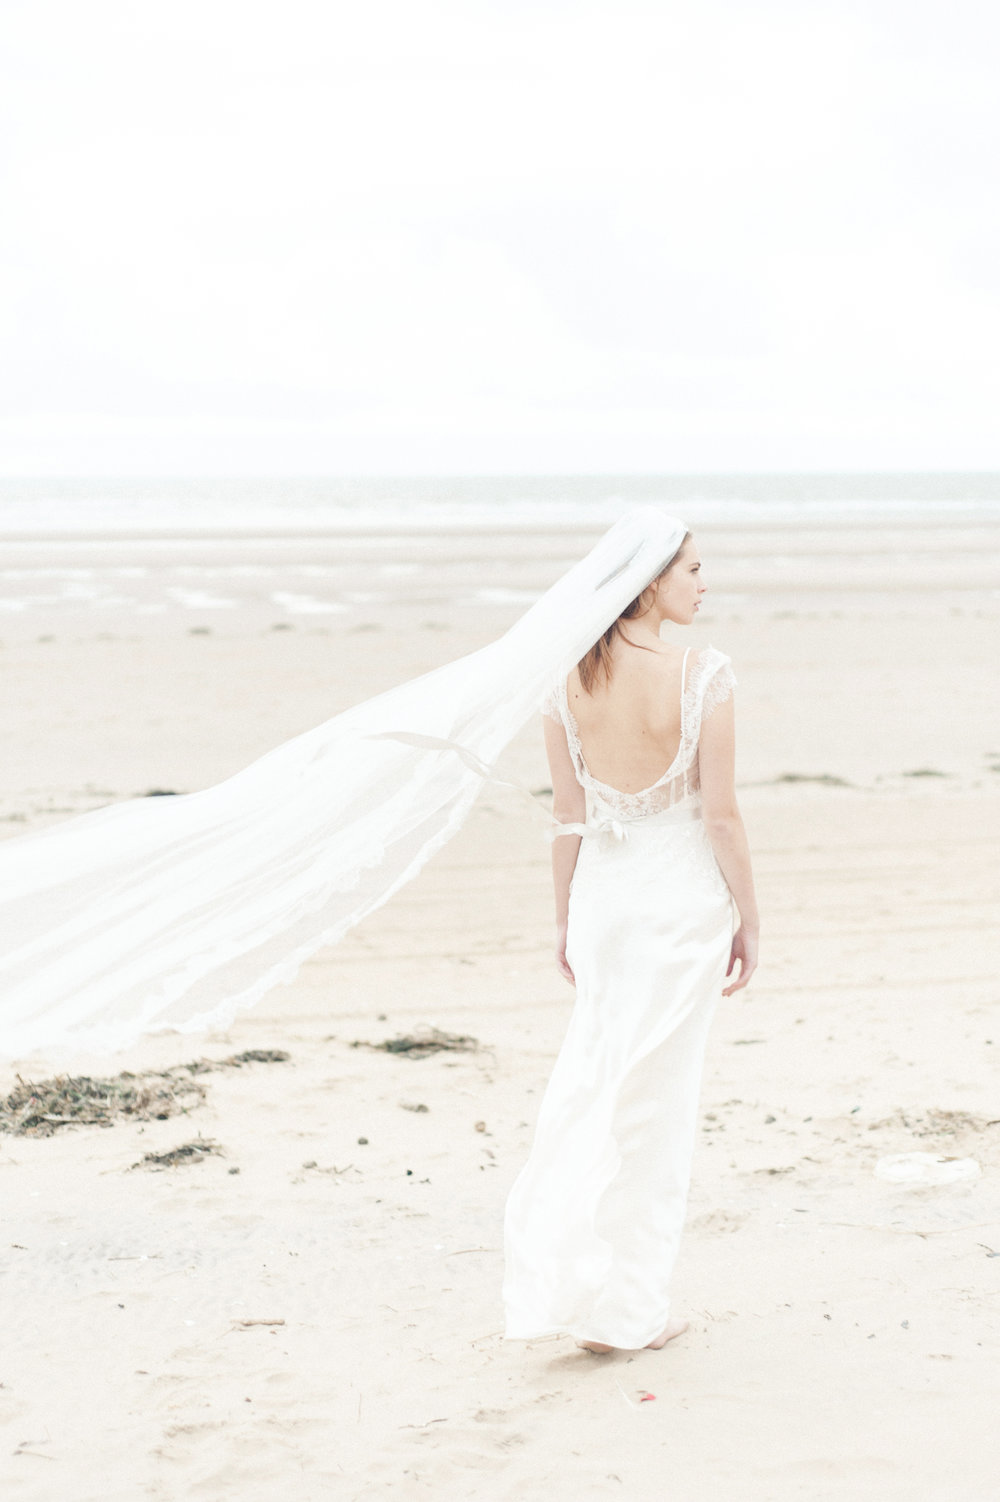 Kate-Beaumont-Wedding-Dresses-Formby-Beach-Emma-Pilkington-44.jpg